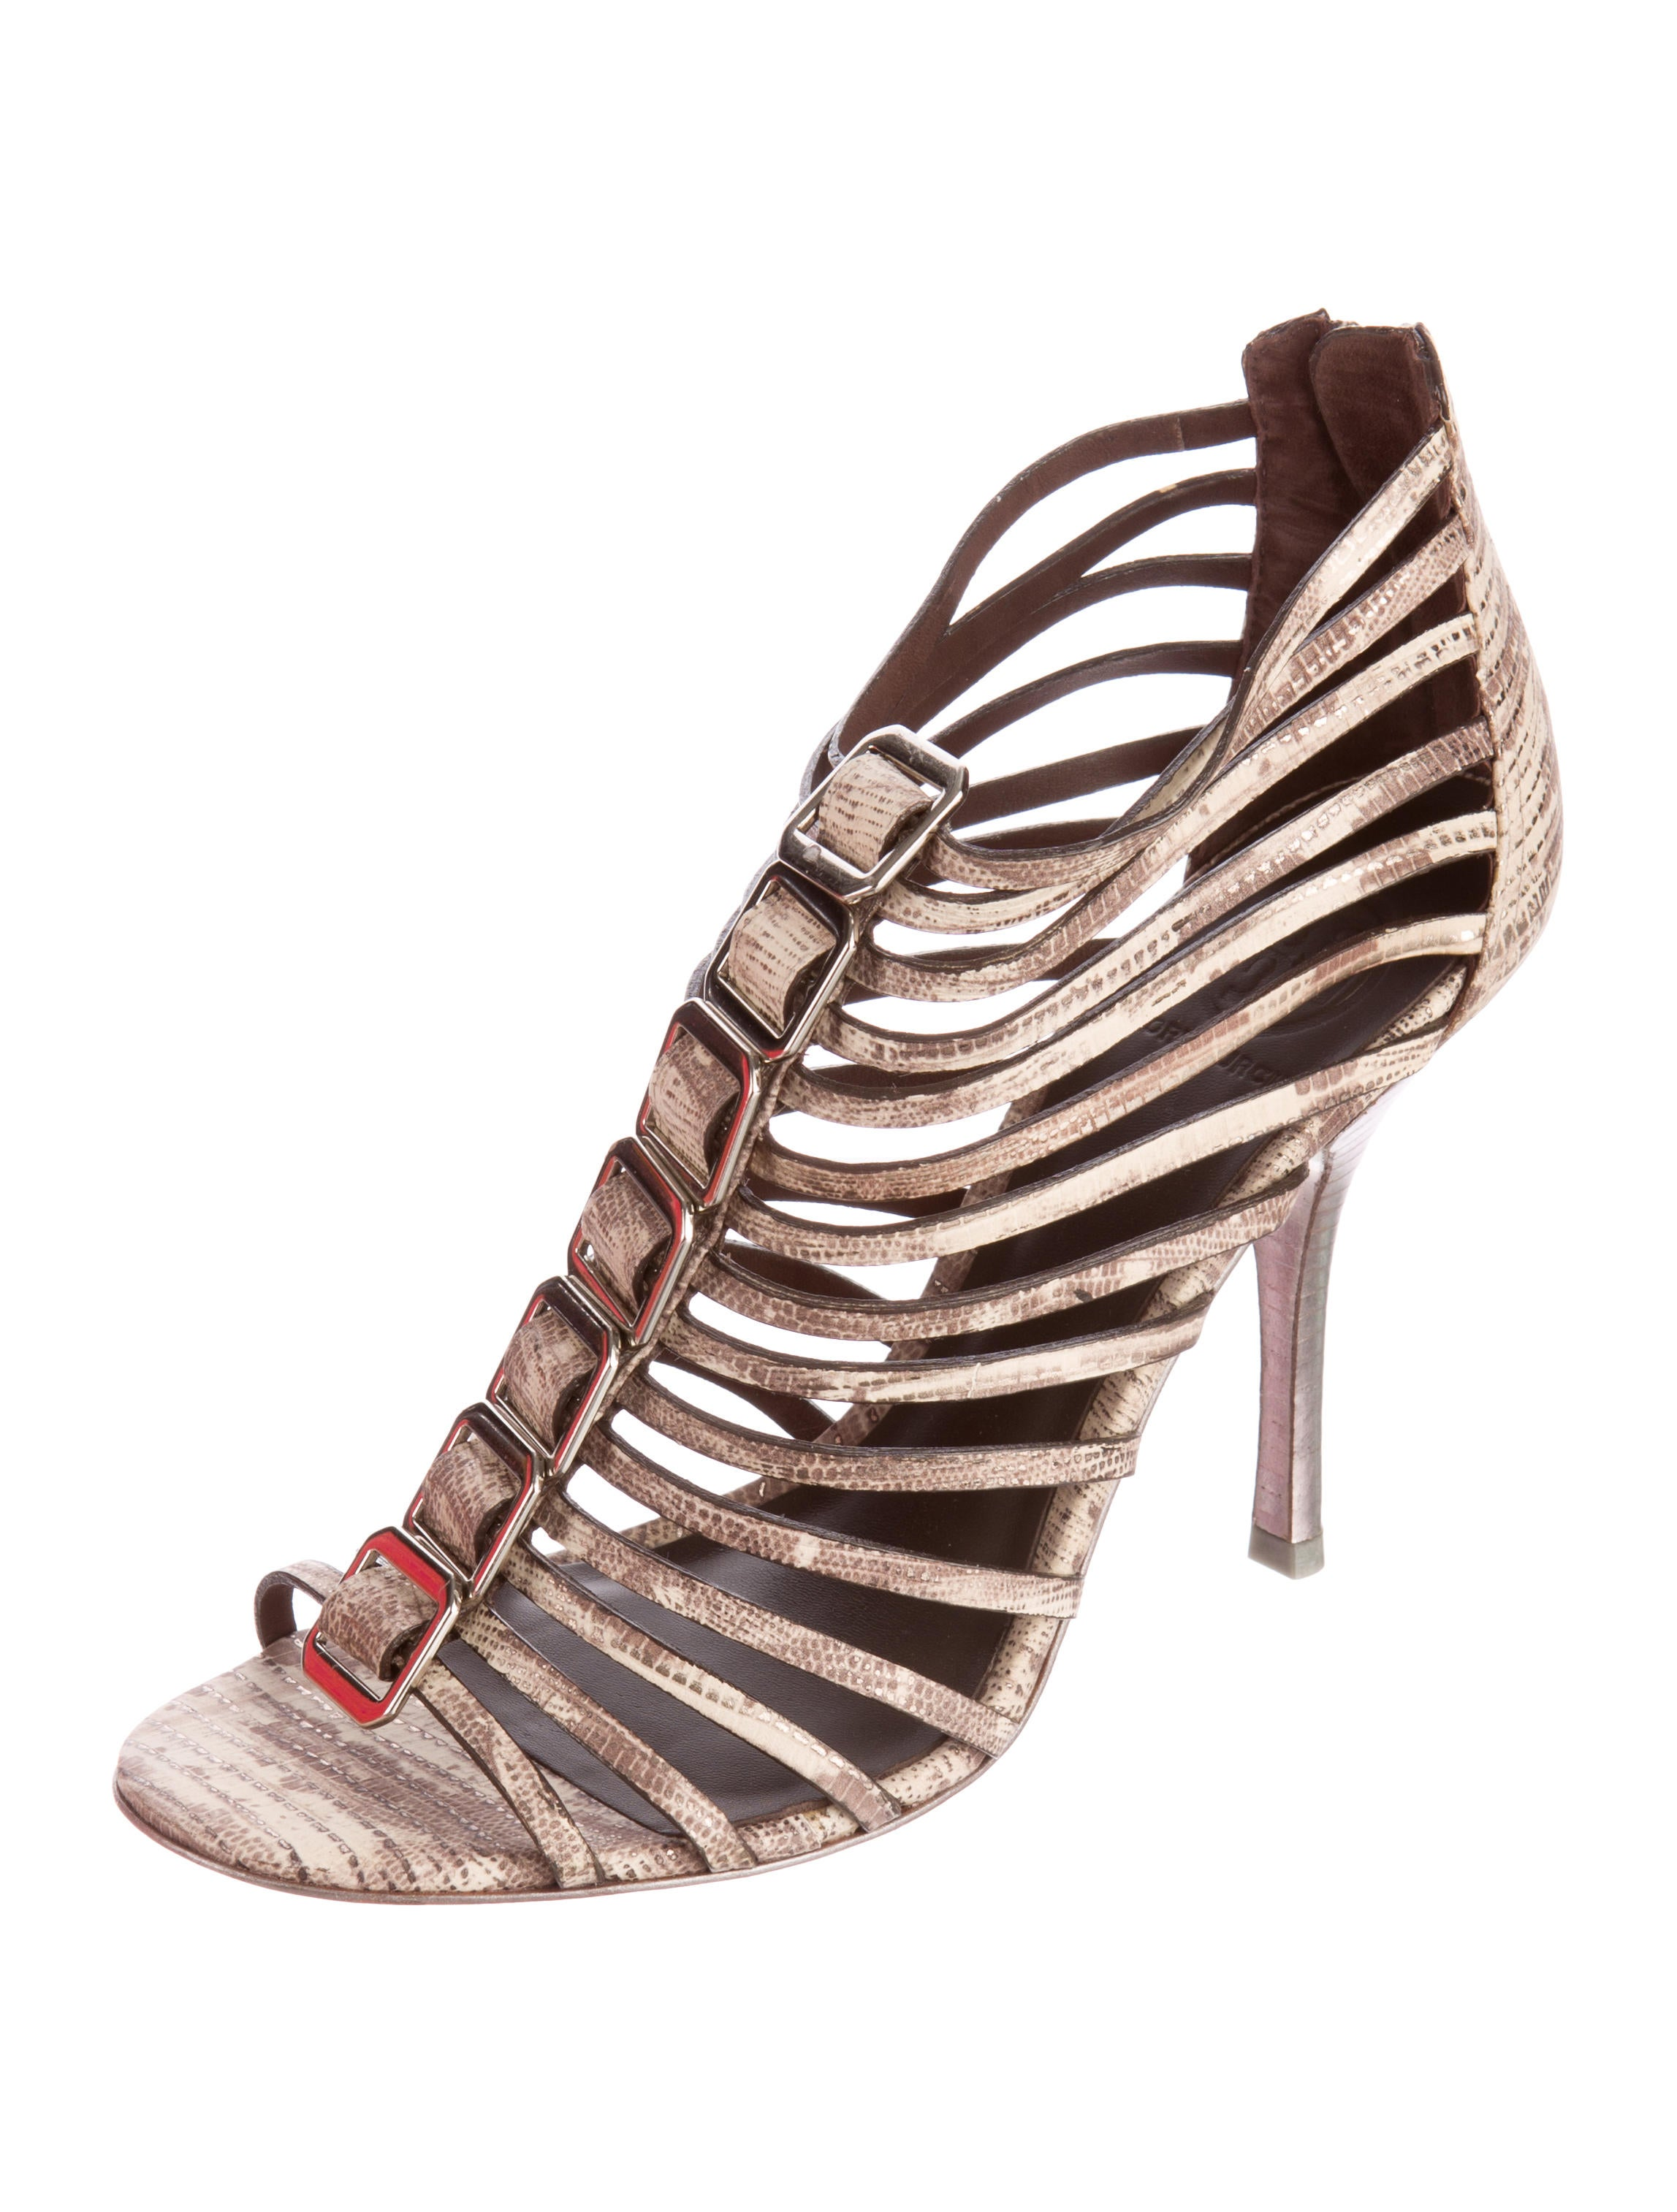 deals online outlet with paypal Tory Burch Embossed Cage Sandals cheap sale outlet store DyneD8fh